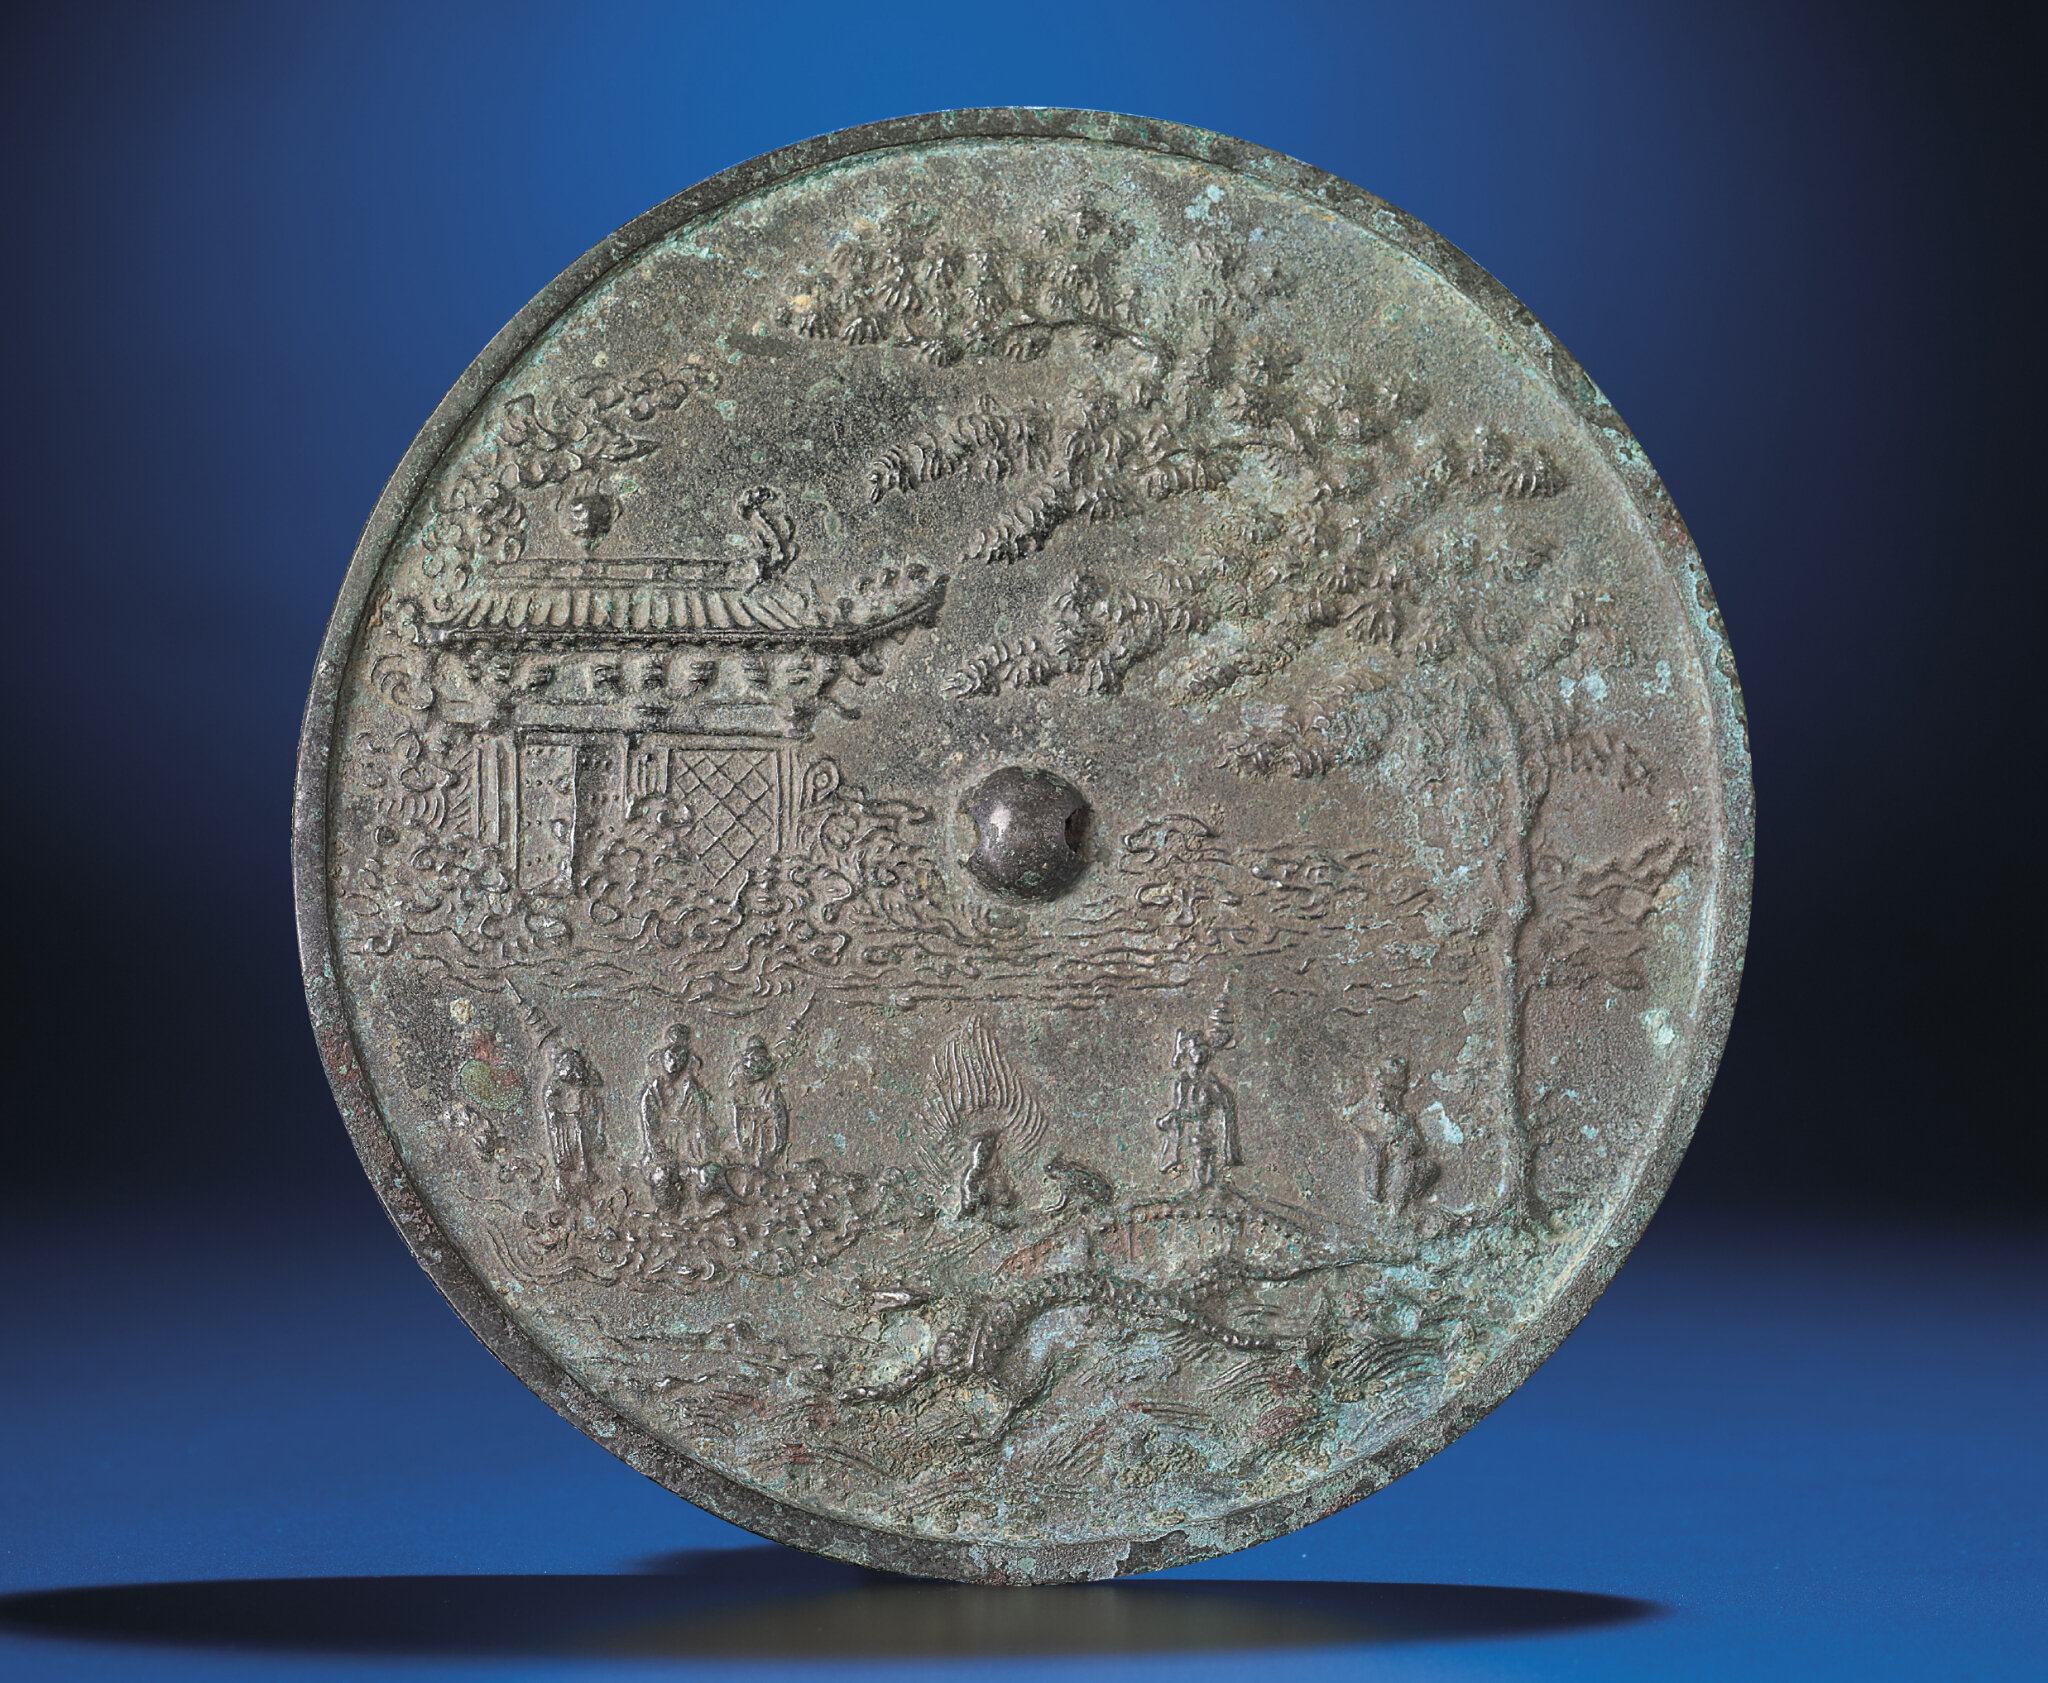 2012_HGK_02963_2231_000(a_rare_bronze_celestial_mirror_song_dynasty)